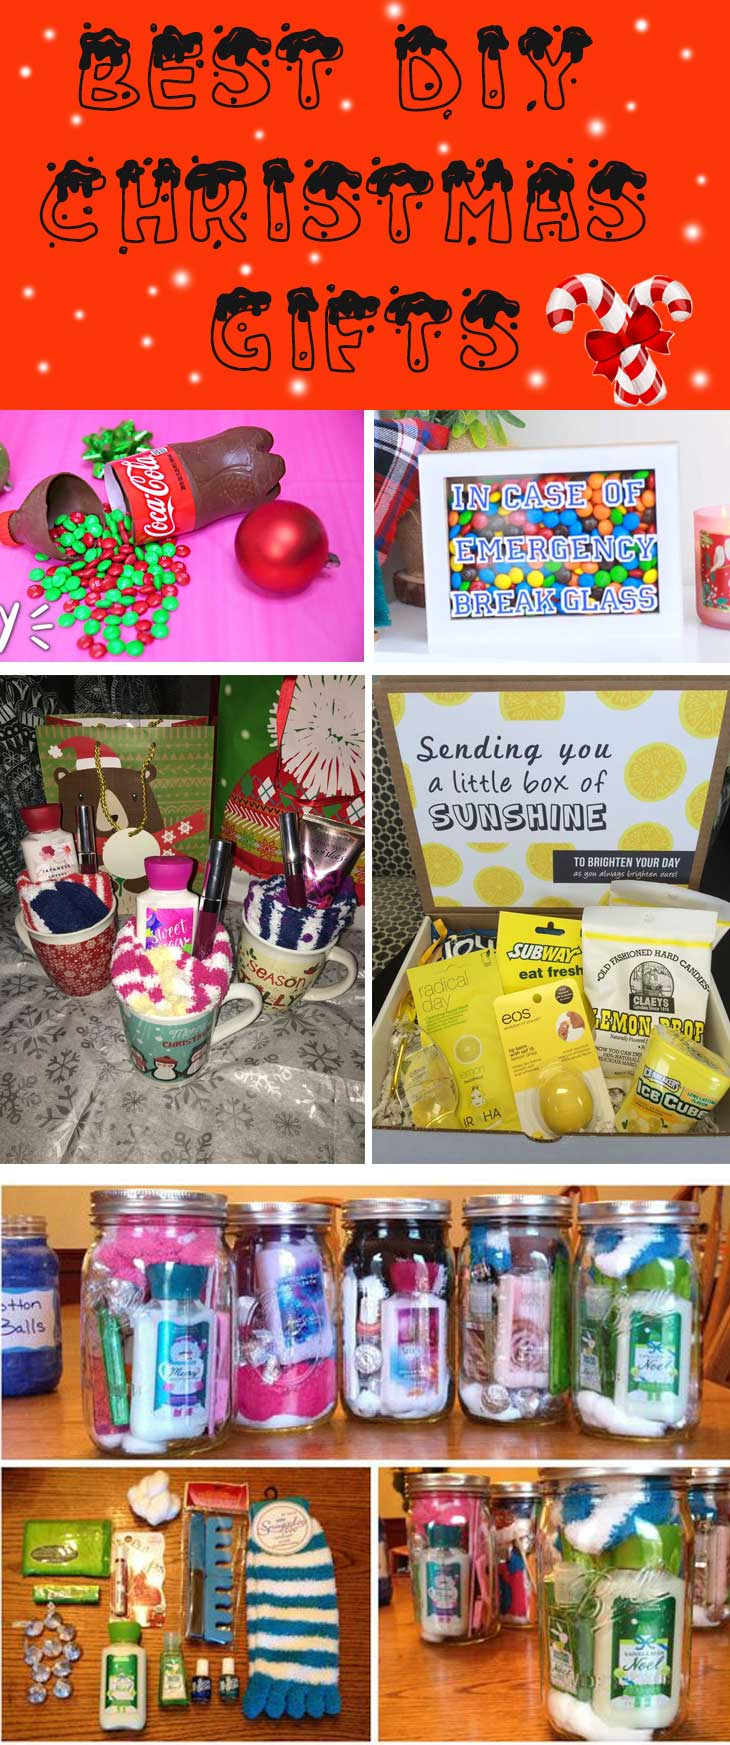 Diy Christmas Gifts For Friends.Diy Christmas Gifts For Friends Diy Cuteness